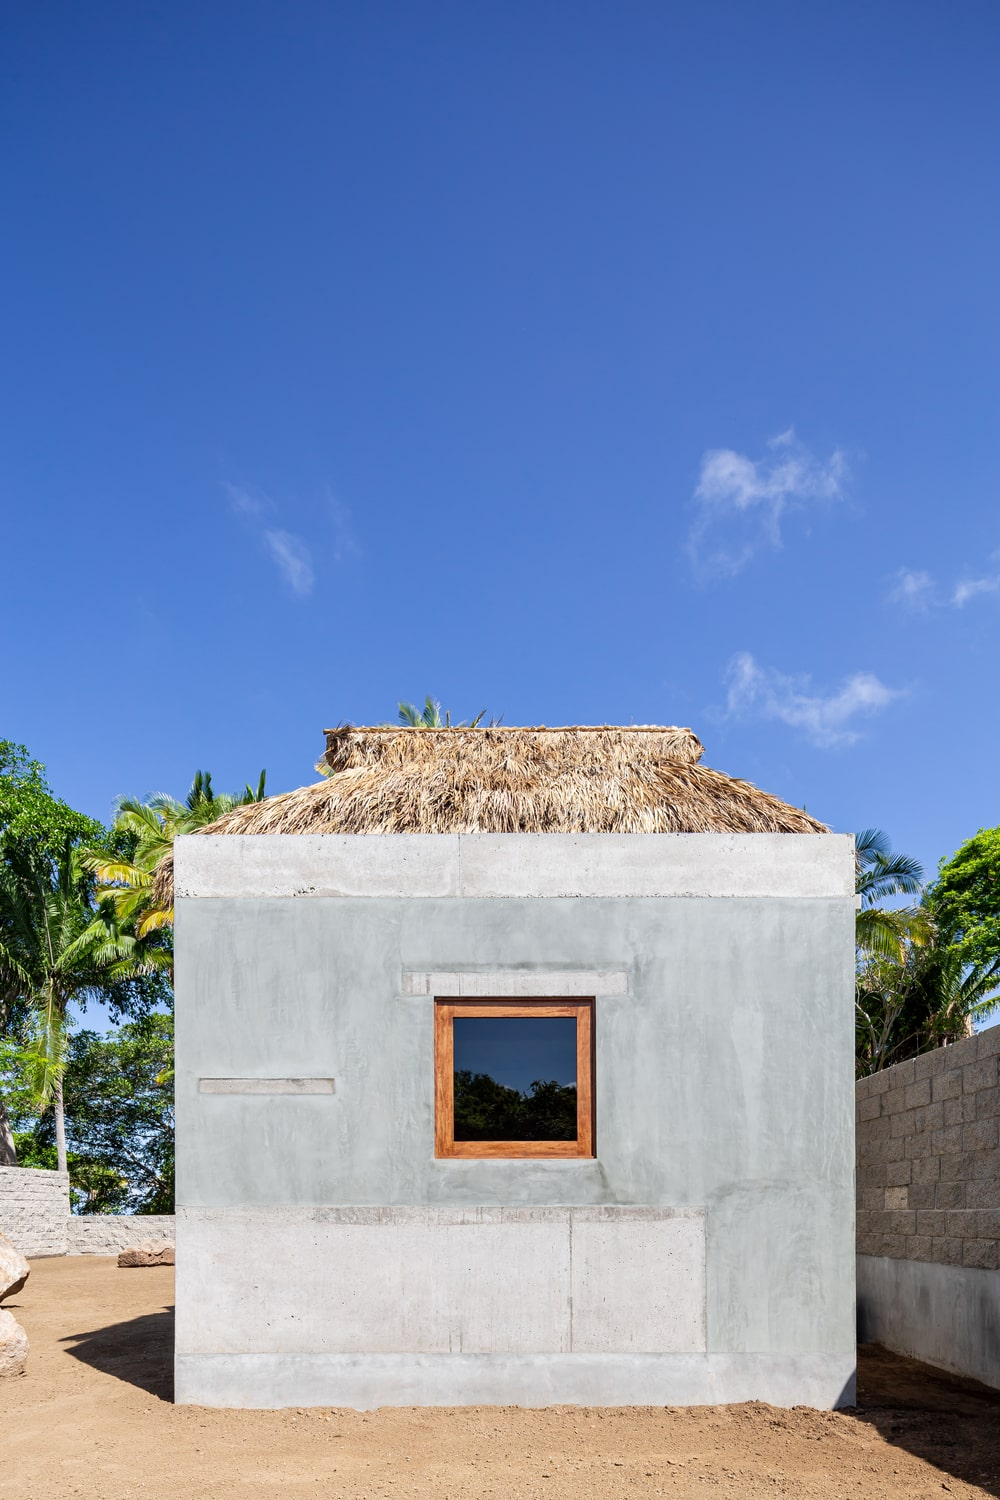 This is a look at the house's elevation that shows the concrete exterior walls and palm roof.